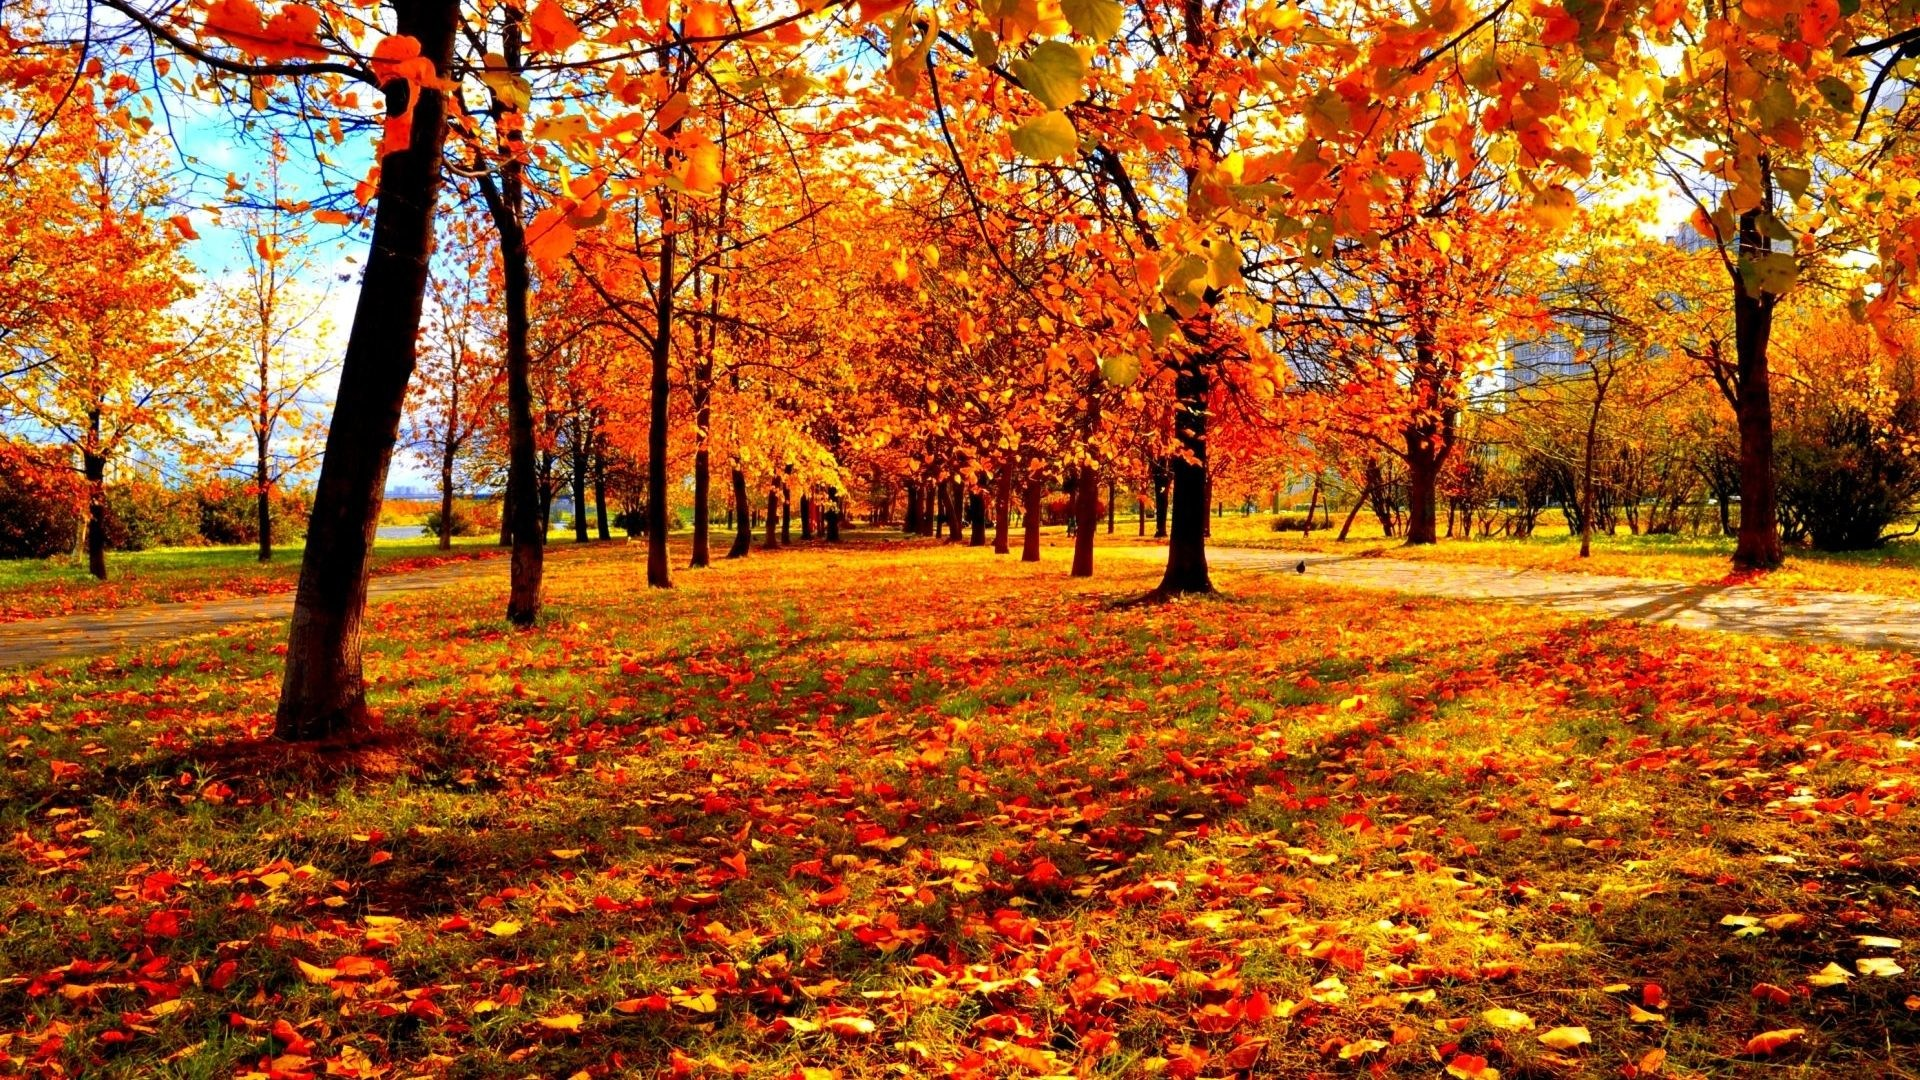 Wallpaper fall season 49 images 2560x1440 voltagebd Choice Image